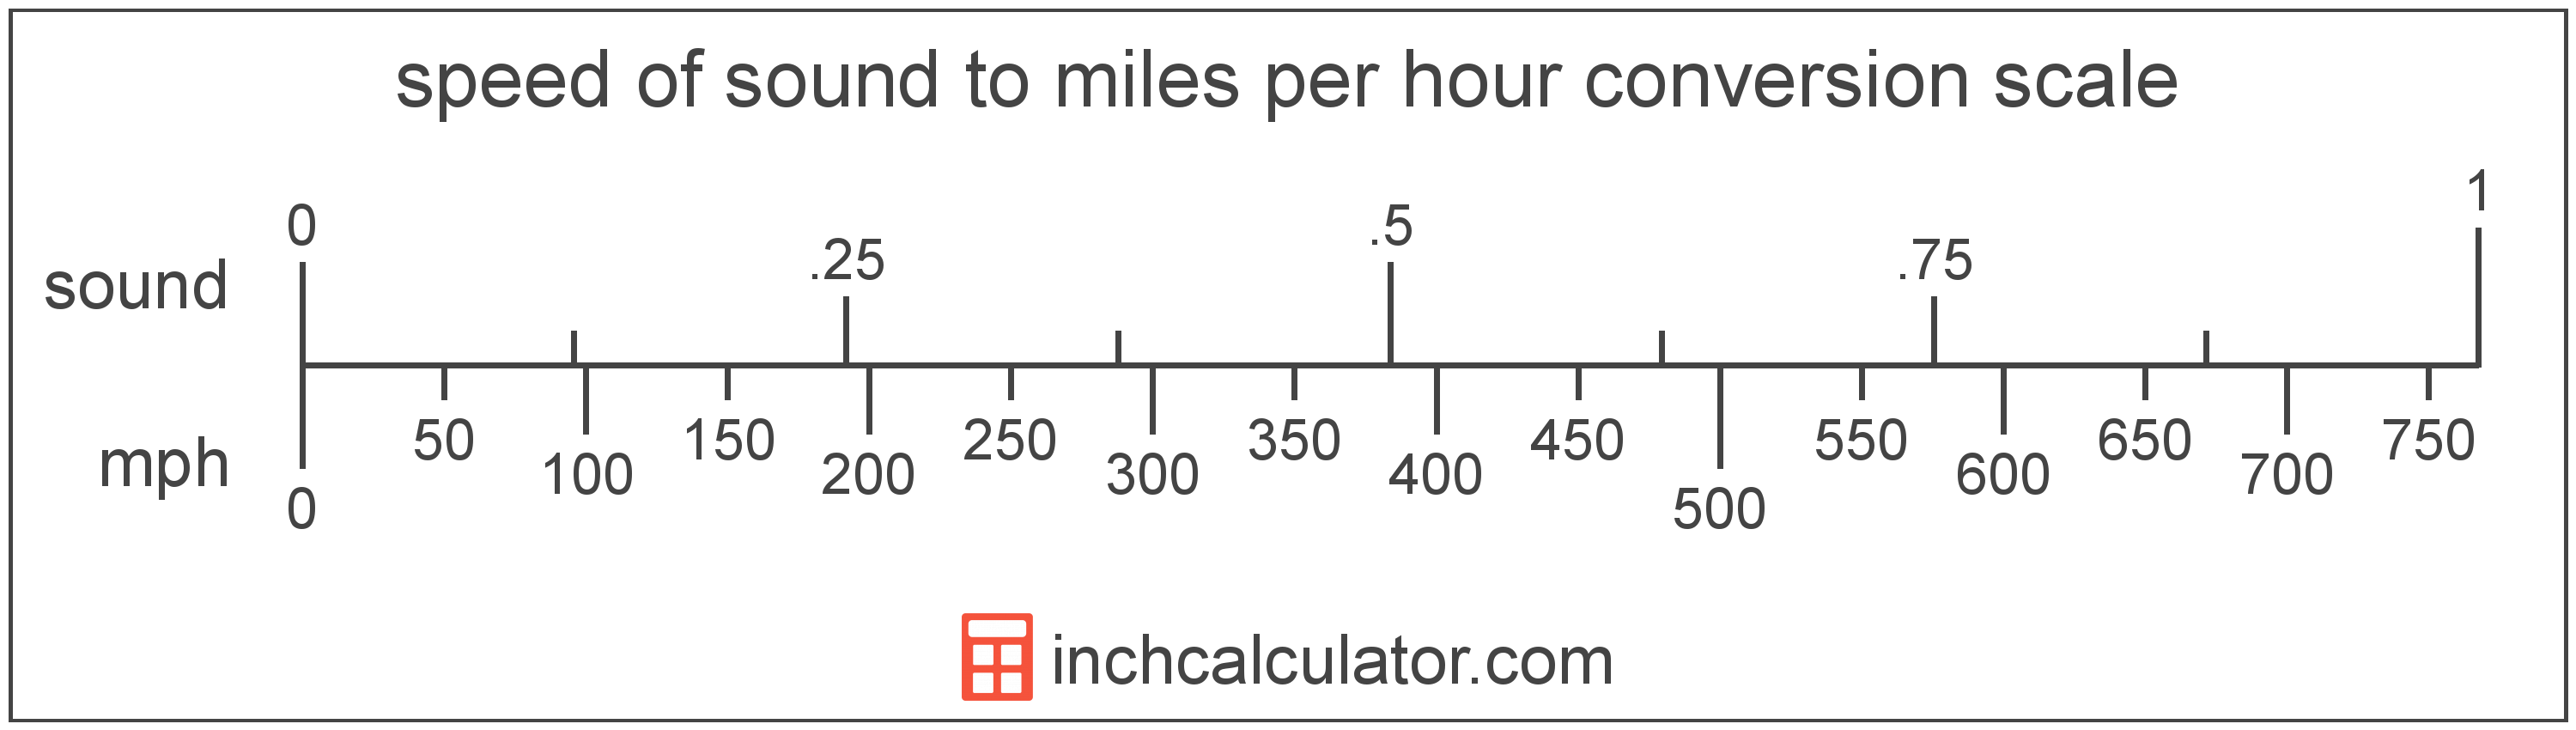 conversion scale showing miles per hour and equivalent speed of sound speed values